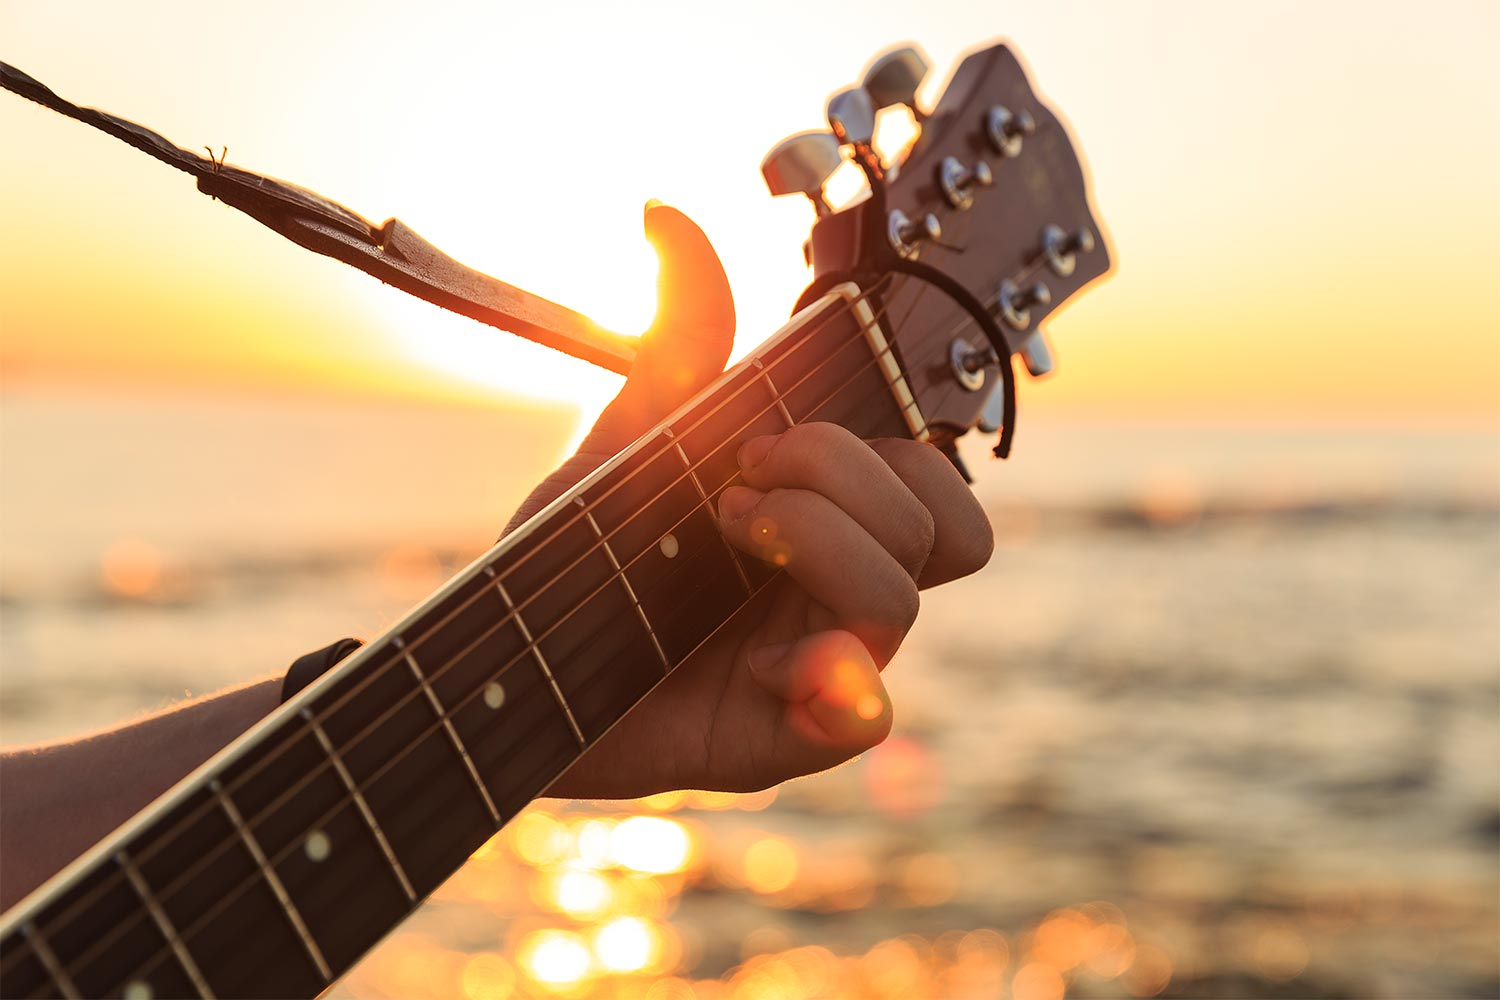 4 Things You Can Do Today To Become A Better Musician